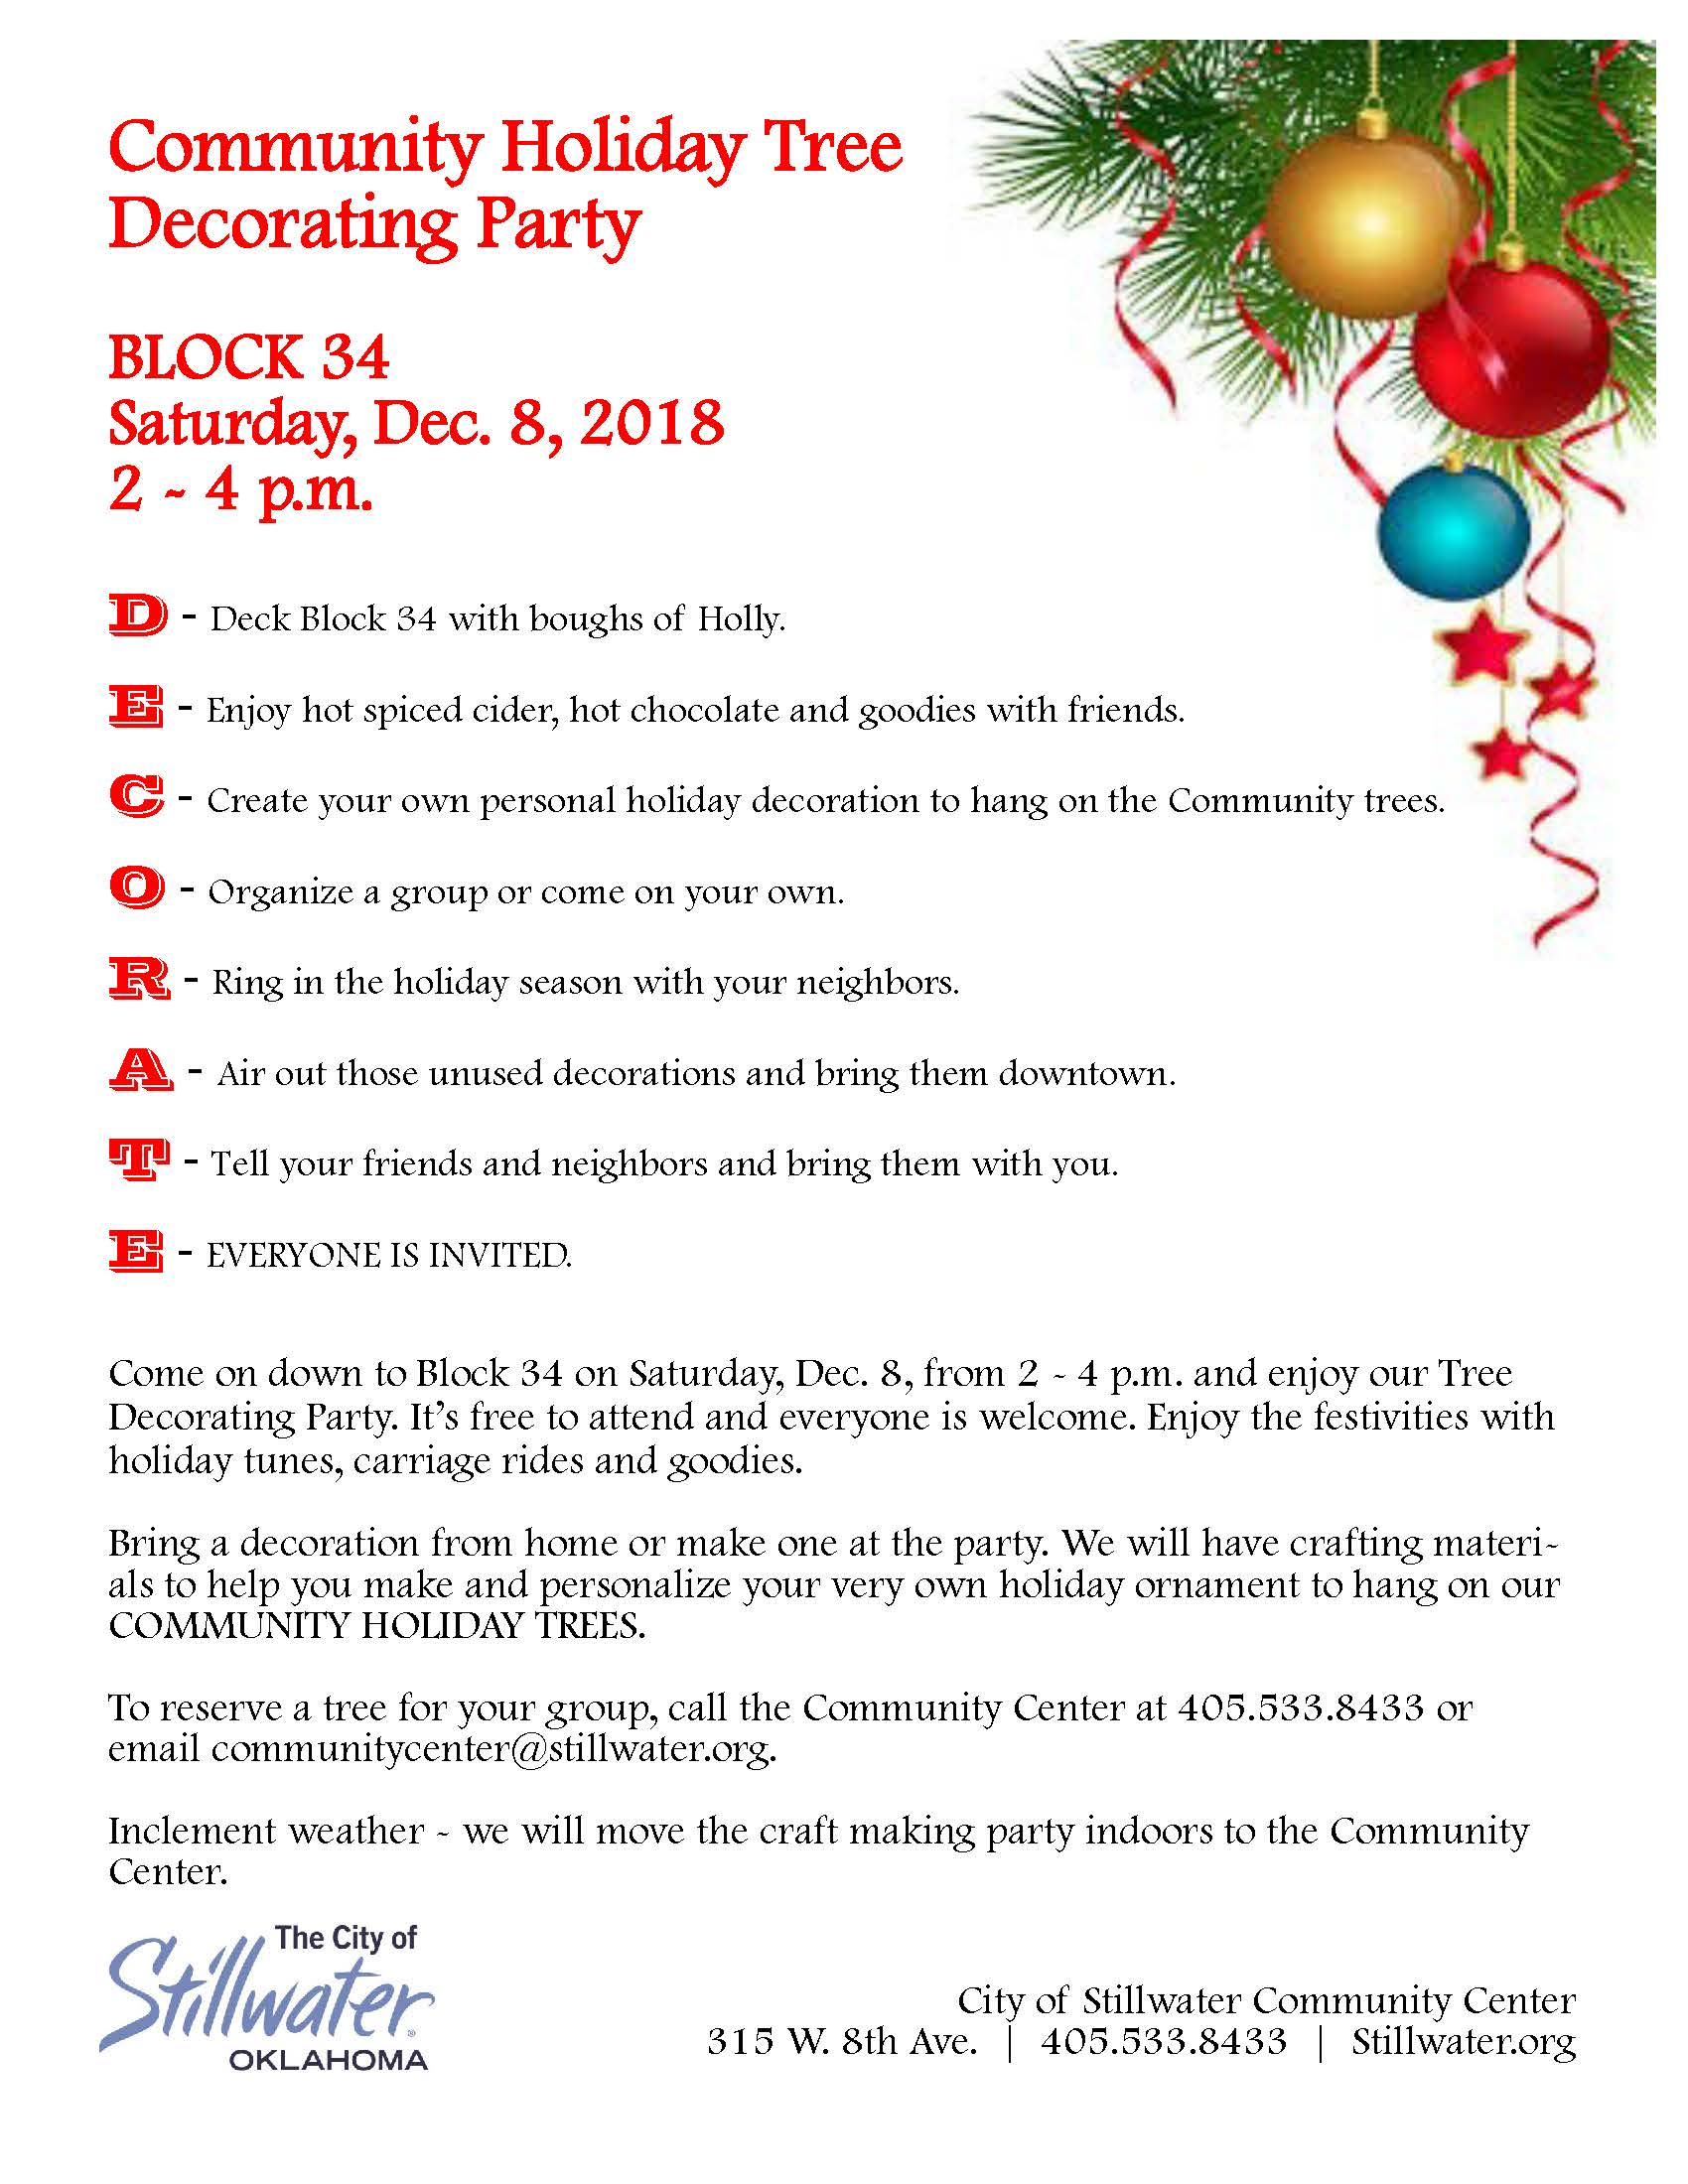 Save the Date: Community Holiday Tree Decorating Party on Dec. 8